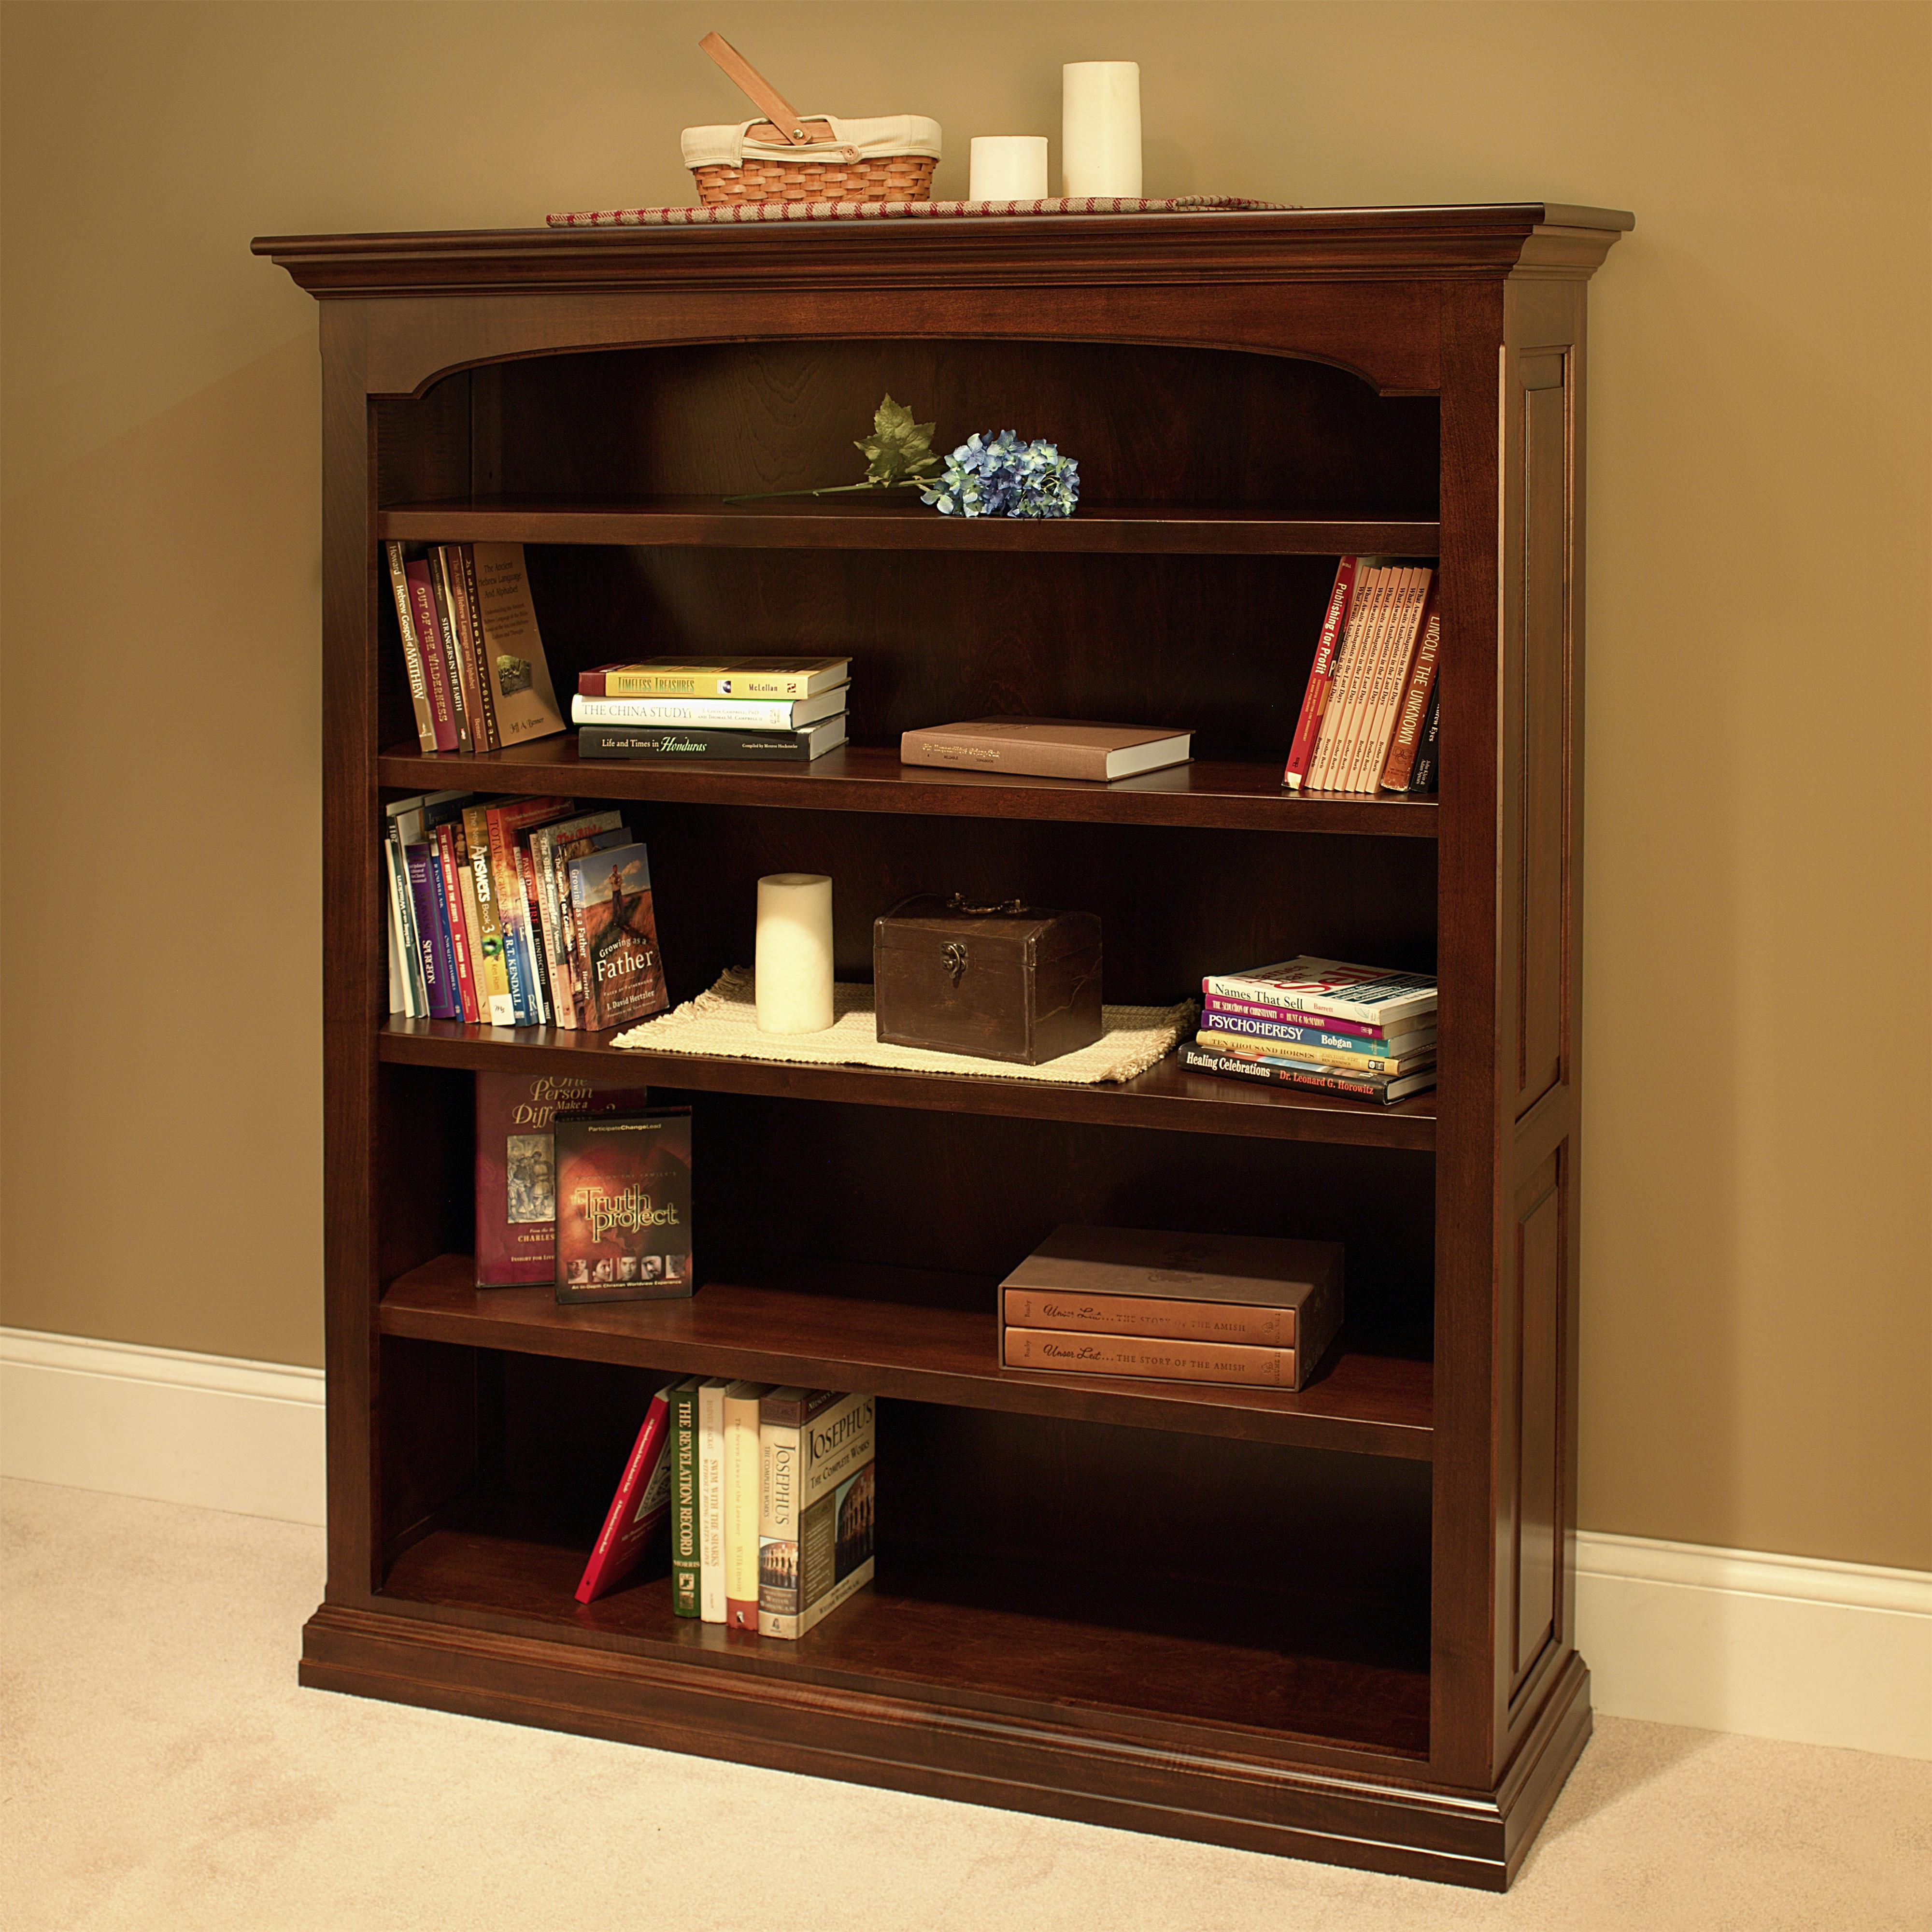 Wonder Wood Bookcases Customizable Traditional Bookcase by Wonder Wood at Saugerties Furniture Mart